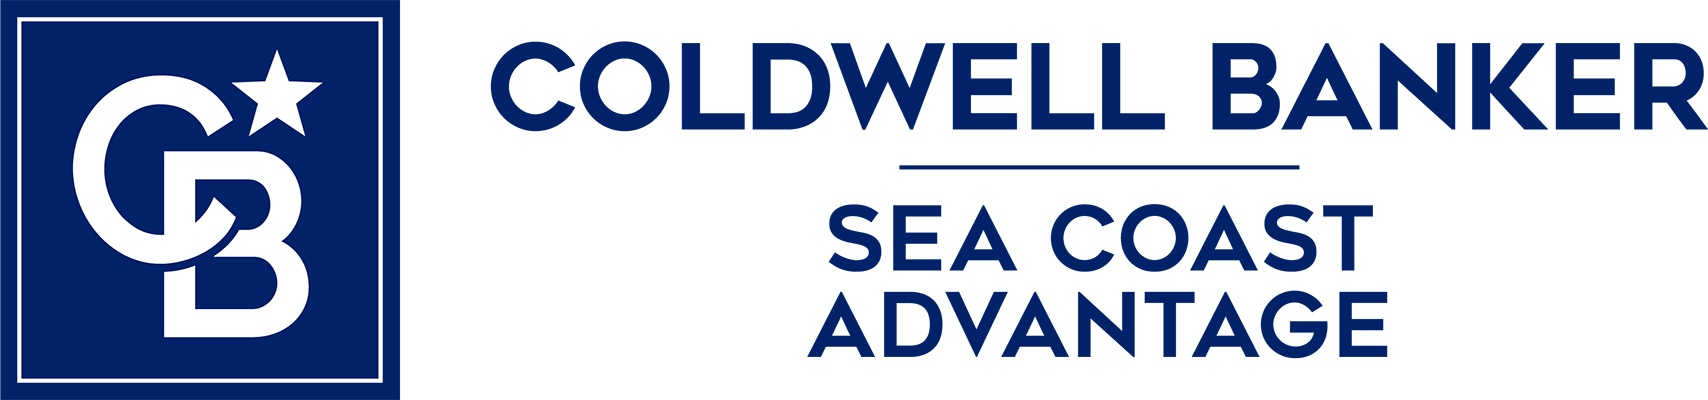 Bob Hestikind - Coldwell Banker Sea Coast Advantage Realty